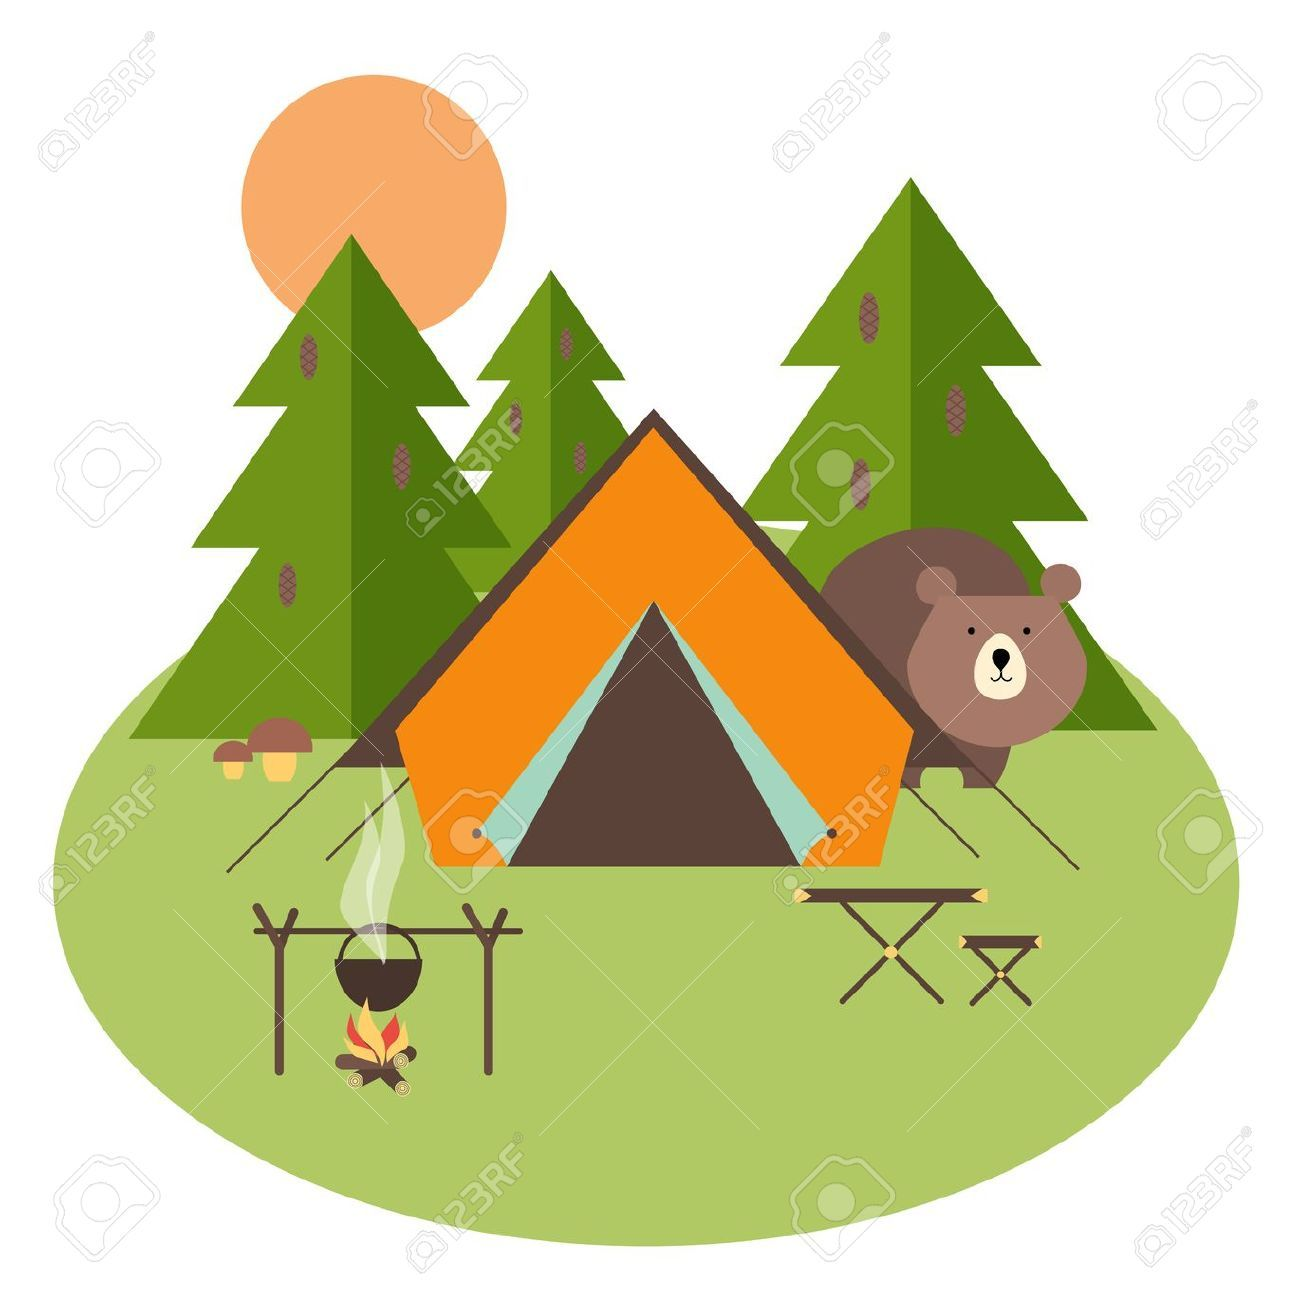 Bears clipart camping. Image result for room